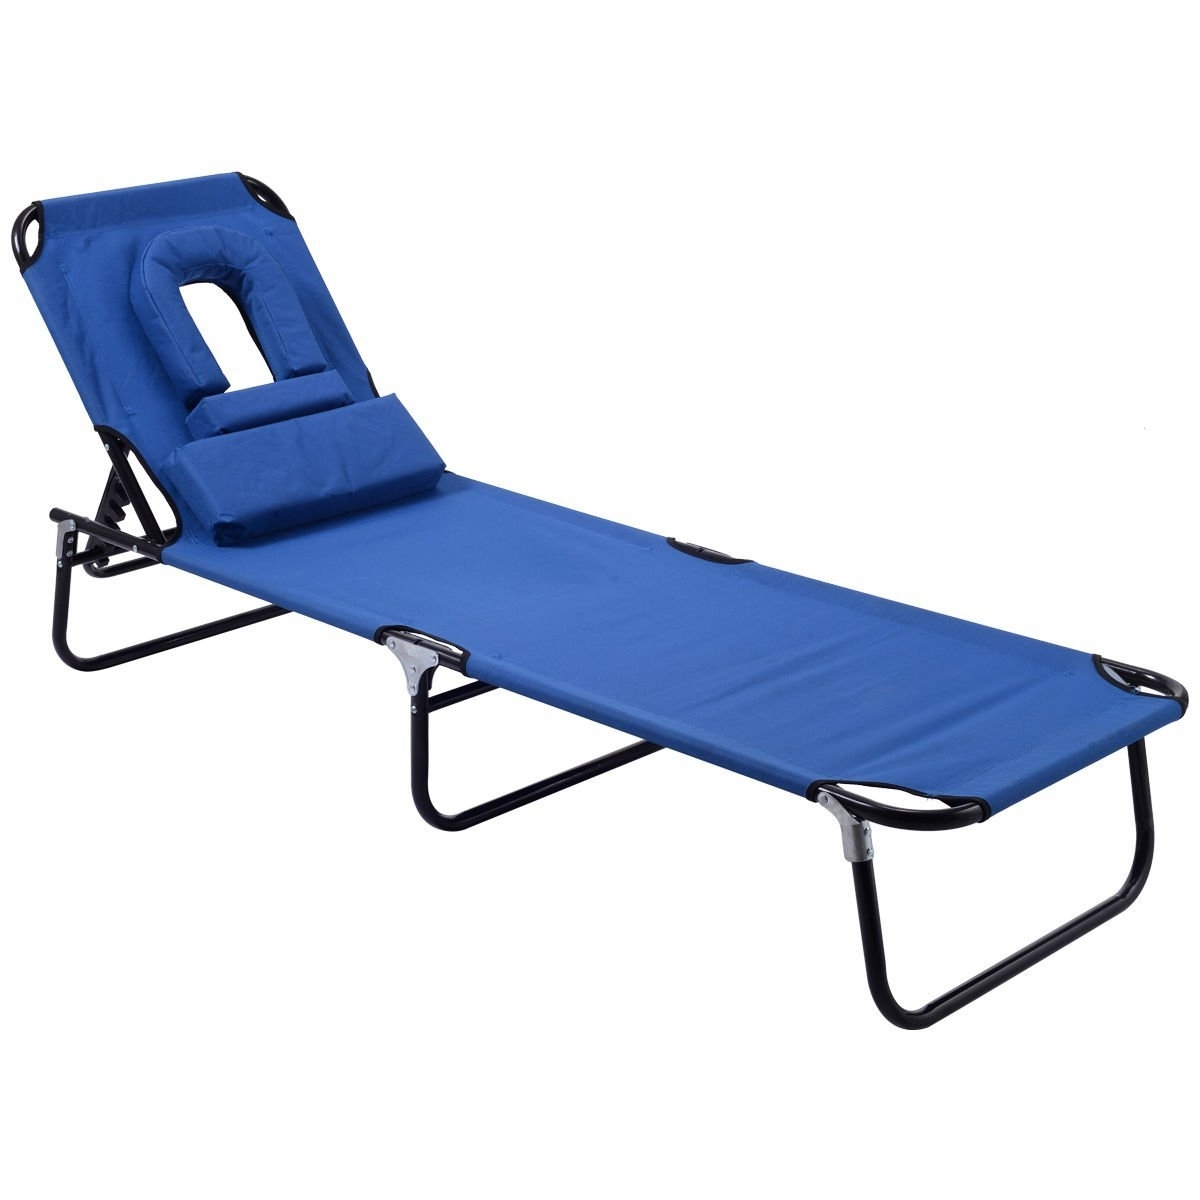 Famous Amazon: Ostrich Lounge Chaise: Garden & Outdoor With Chaise Lounge Folding Chairs (View 6 of 15)